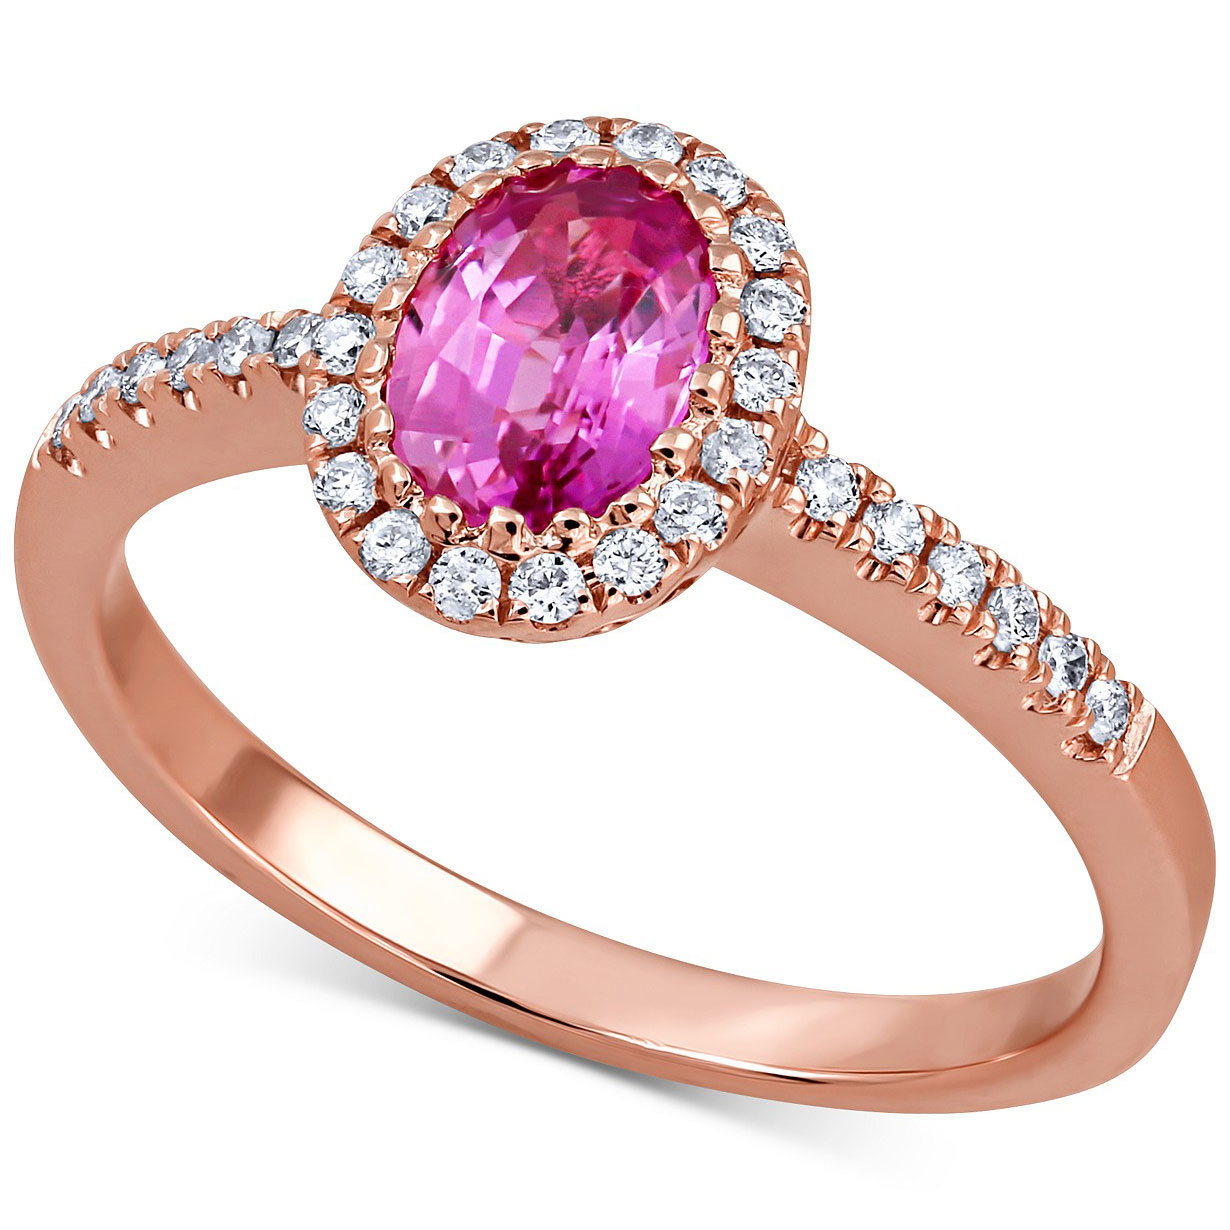 Macy's Pink Sapphire & Diamond Ring in 14k Rose Gold from Macys photo